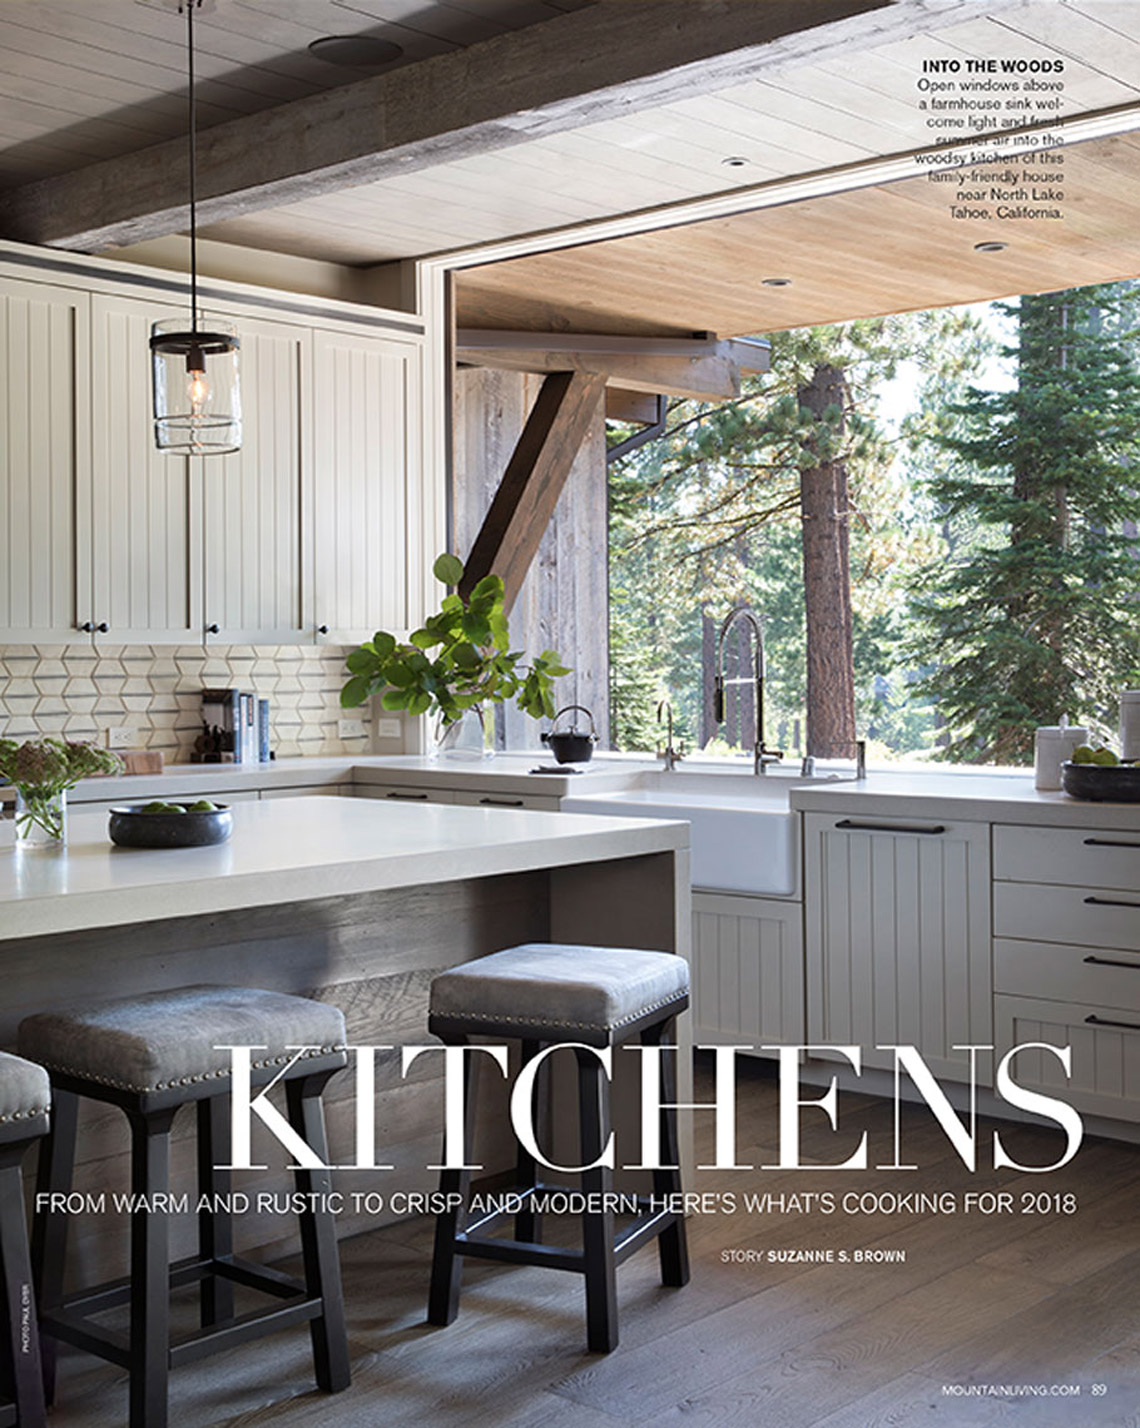 kitchens_spec-sec-1